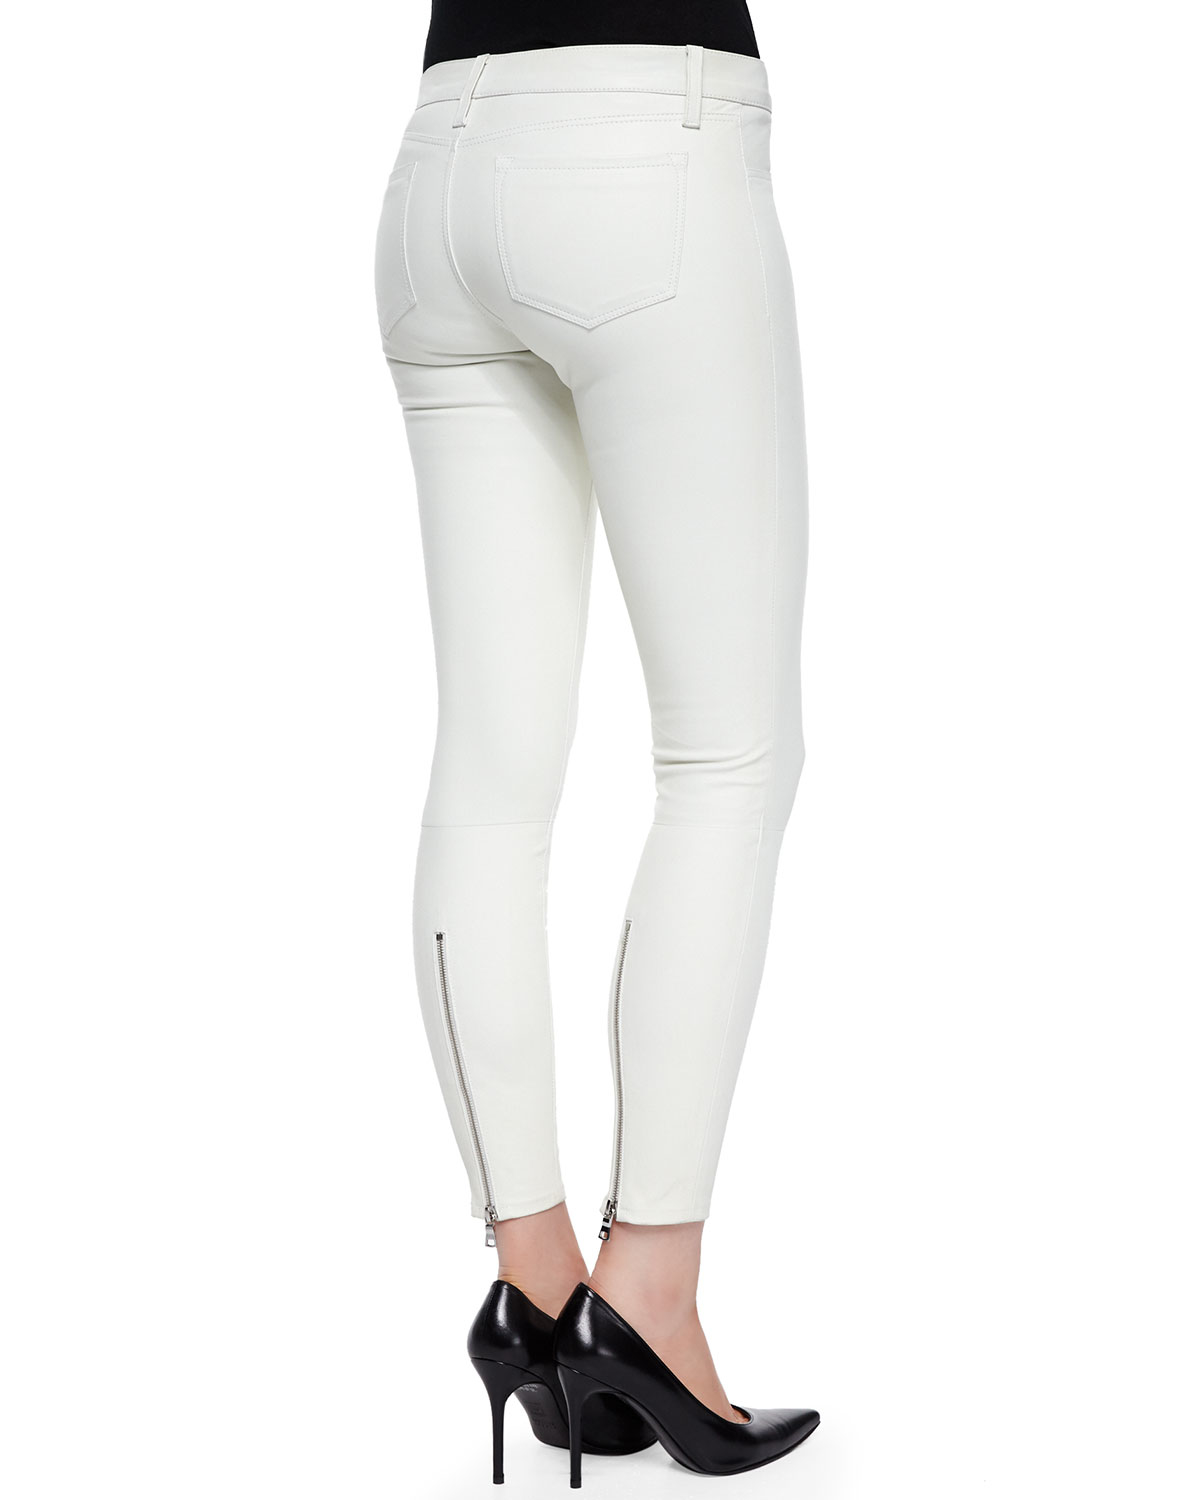 Shop leather pants at Neiman Marcus, where you will find free shipping on the latest in fashion from top designers.